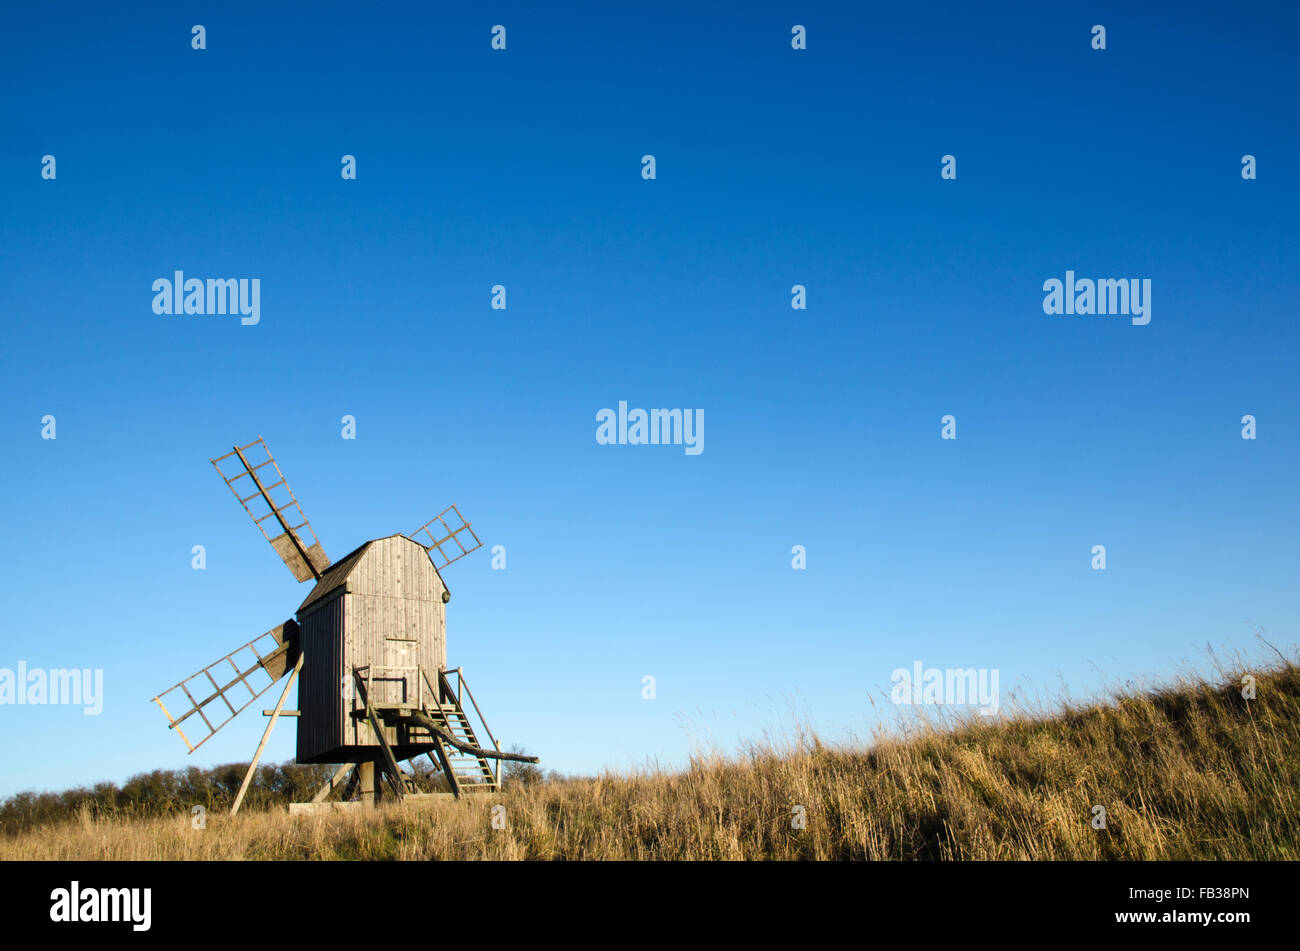 Sunlit old traditional wooden windmill on at the swedish island Oland, the island of sun and wind - Stock Image